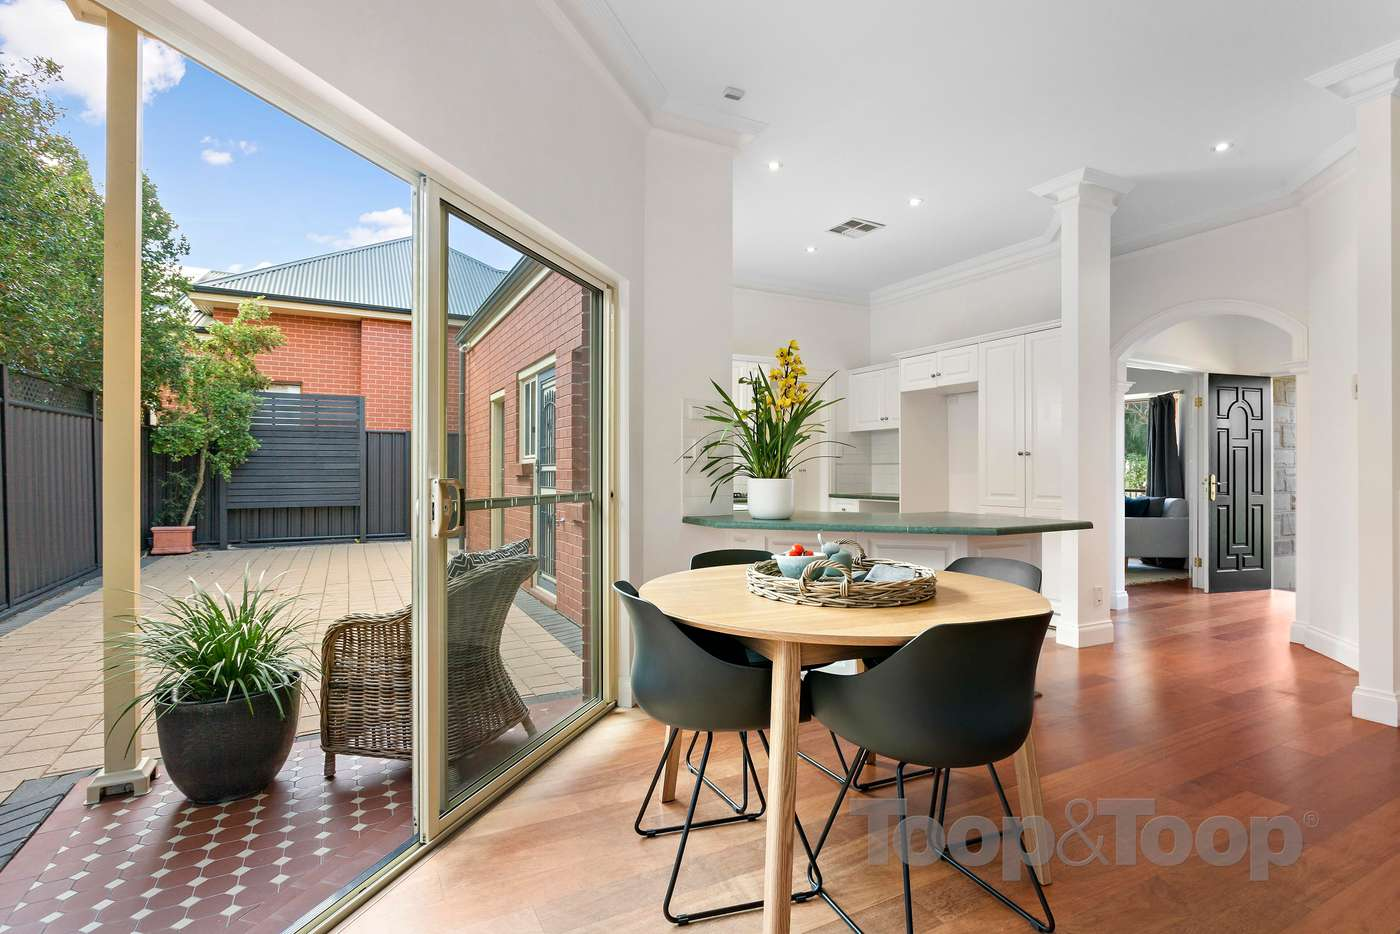 Sixth view of Homely house listing, 2A Edward Street, Evandale SA 5069